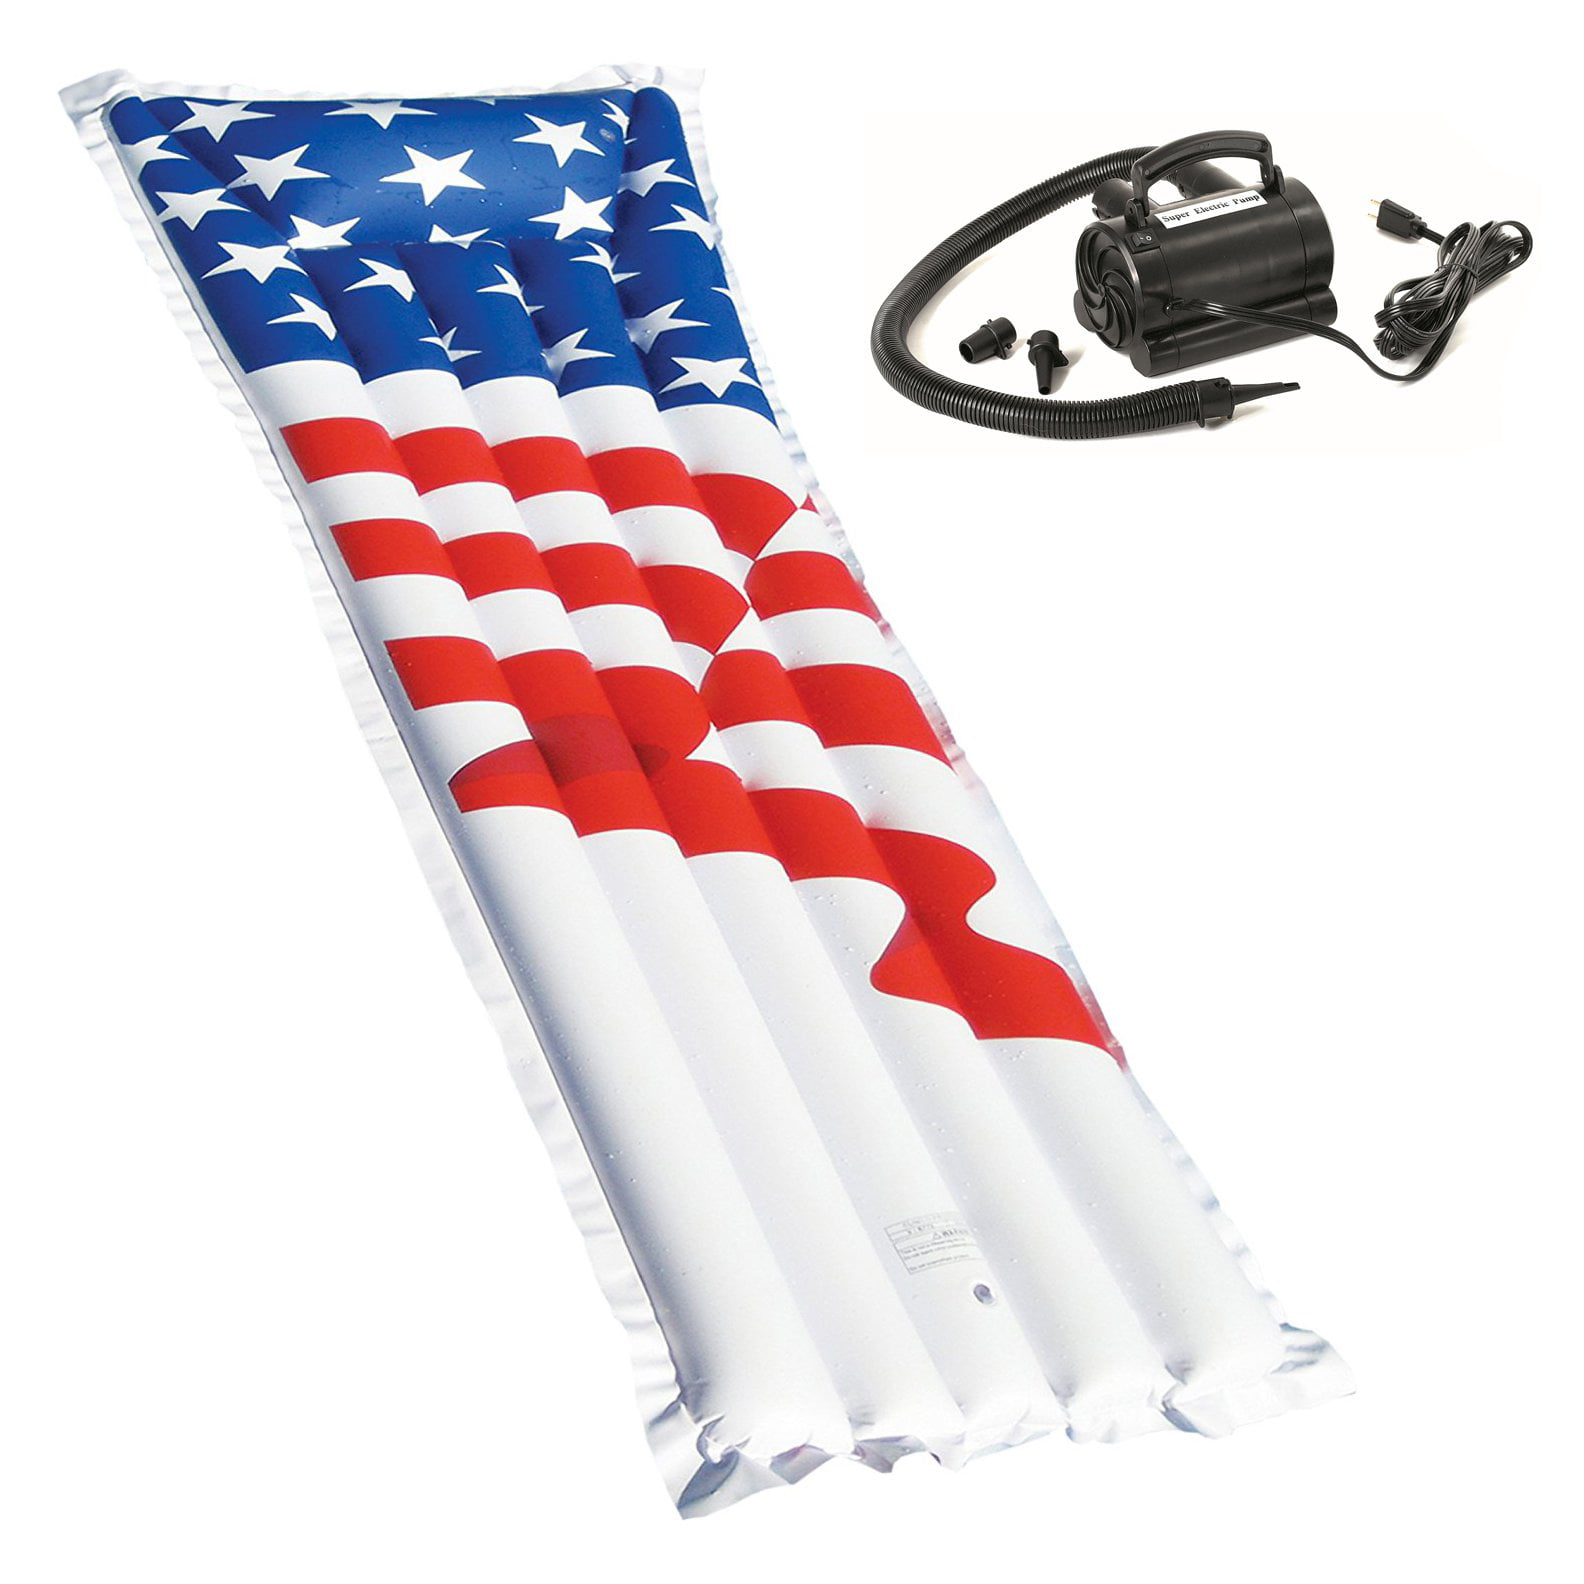 Swimline 72-Inch American Flag Swimming Pool Raft Float with Electric Air Pump by Swimline